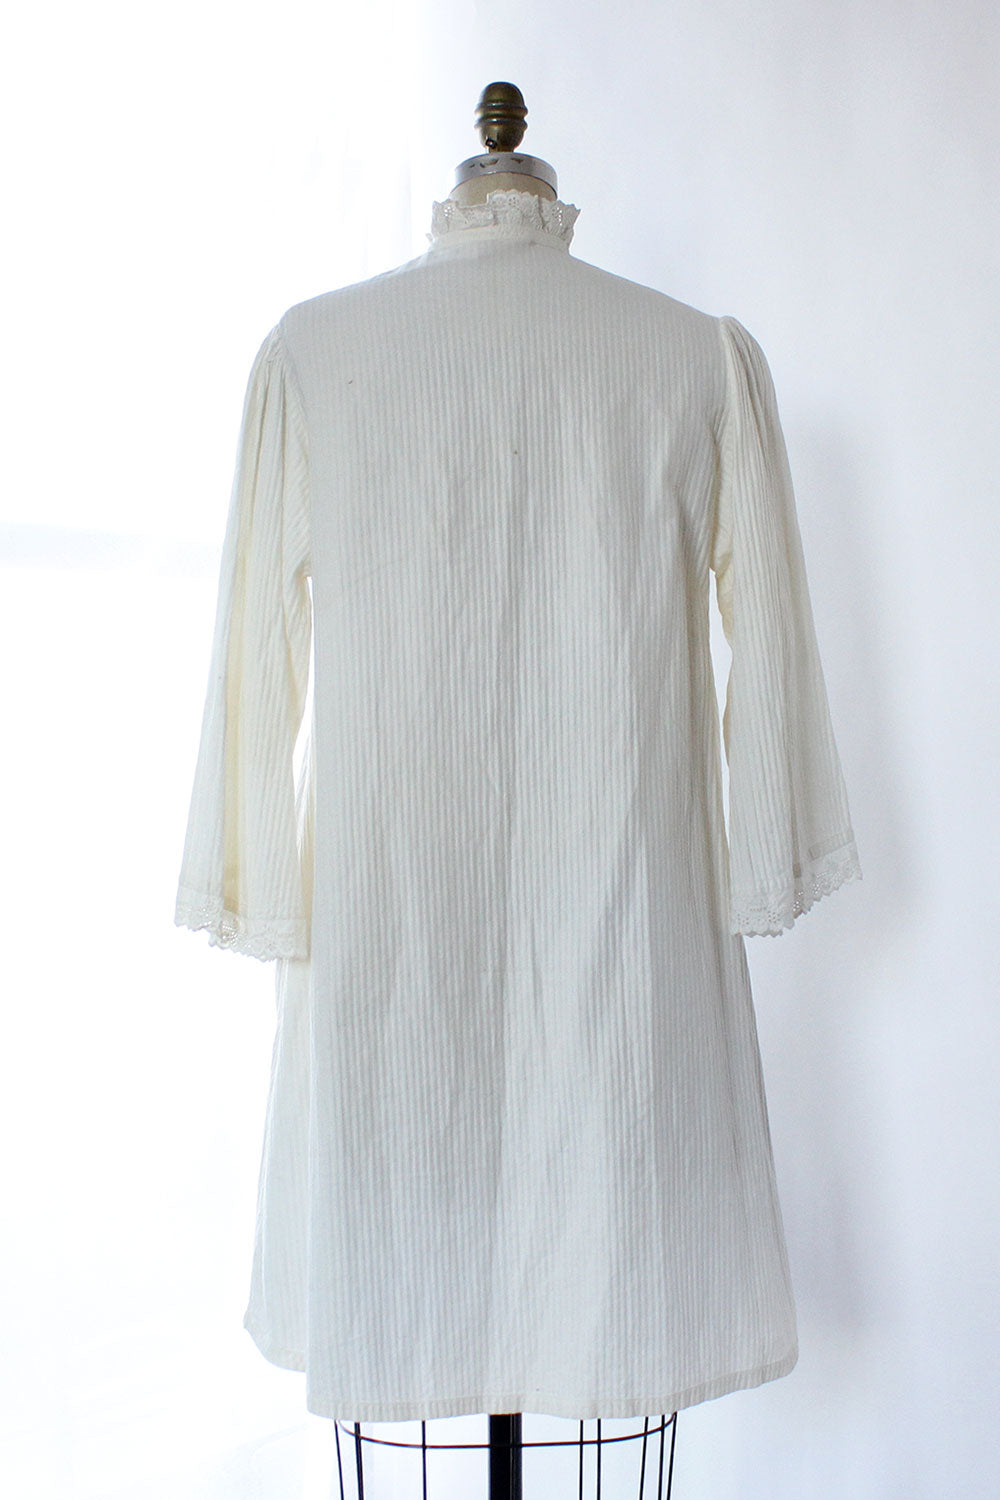 Pintucked 1920s Duster Dress